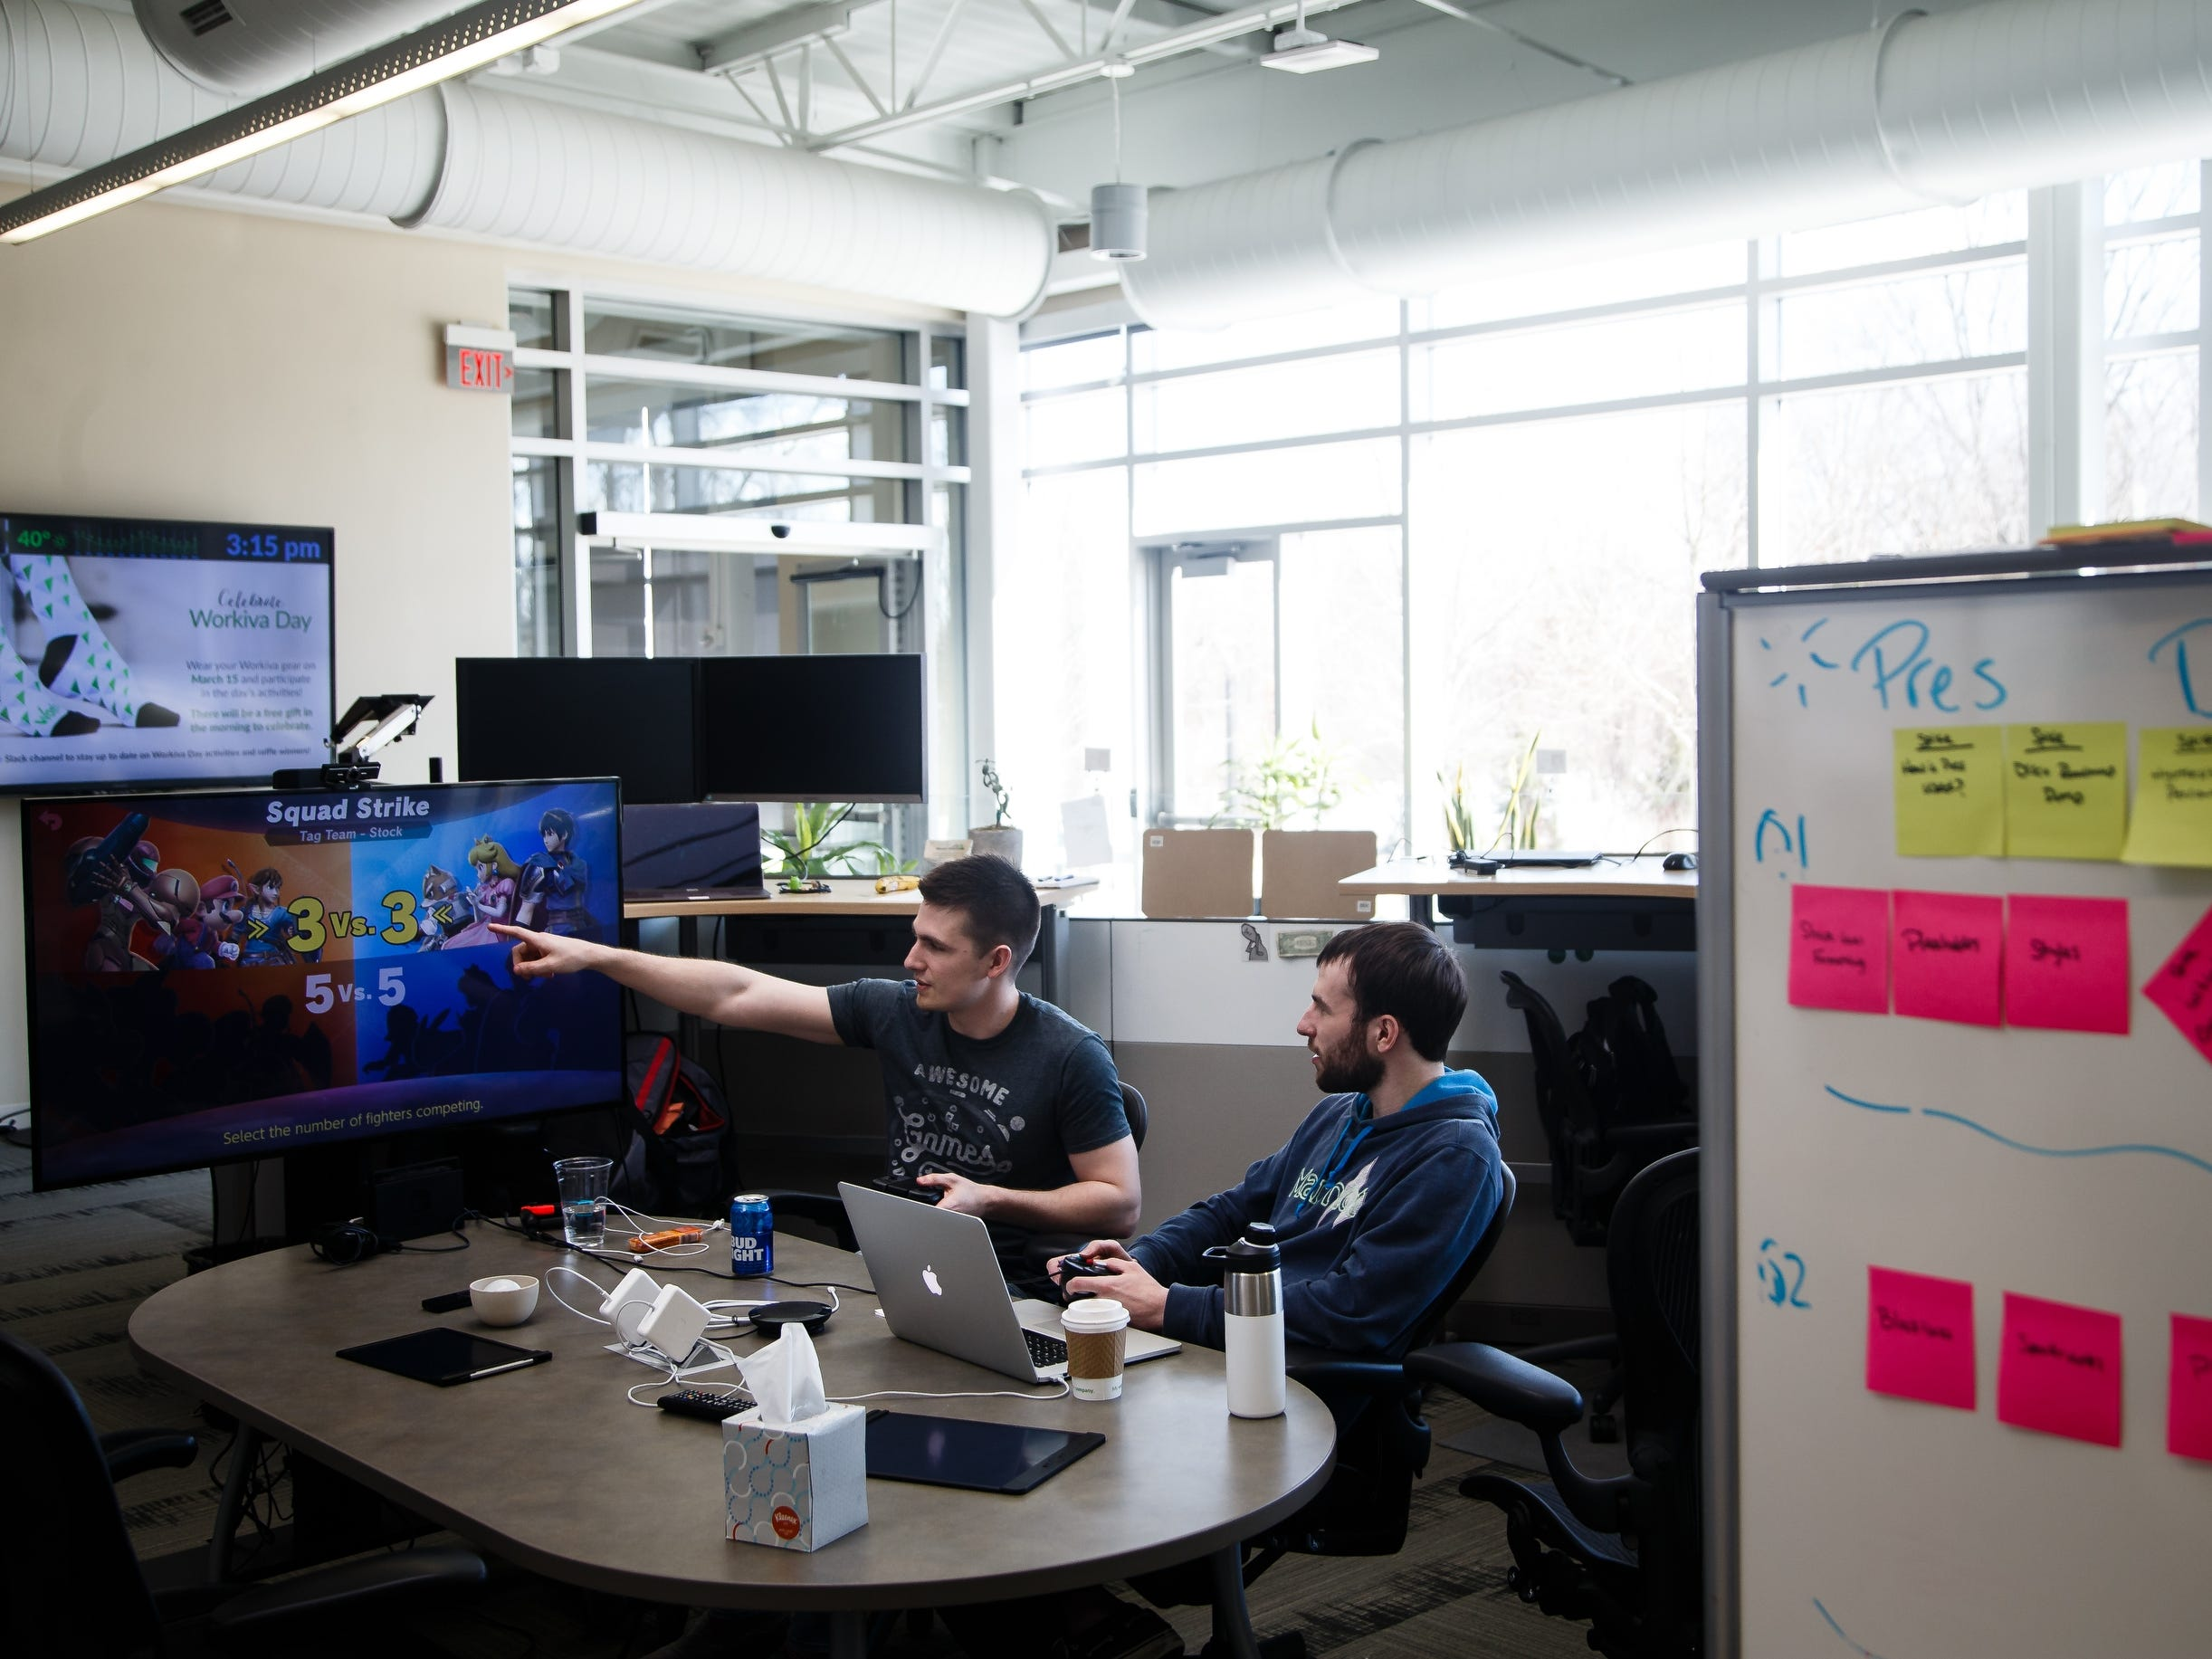 Joey Elliot, 23 of Ames, left, and Kyle Shattuck, 26 of Ames, right take a break to play a game at Workiva, a tech company in Ames on Friday, March 15, 2019.